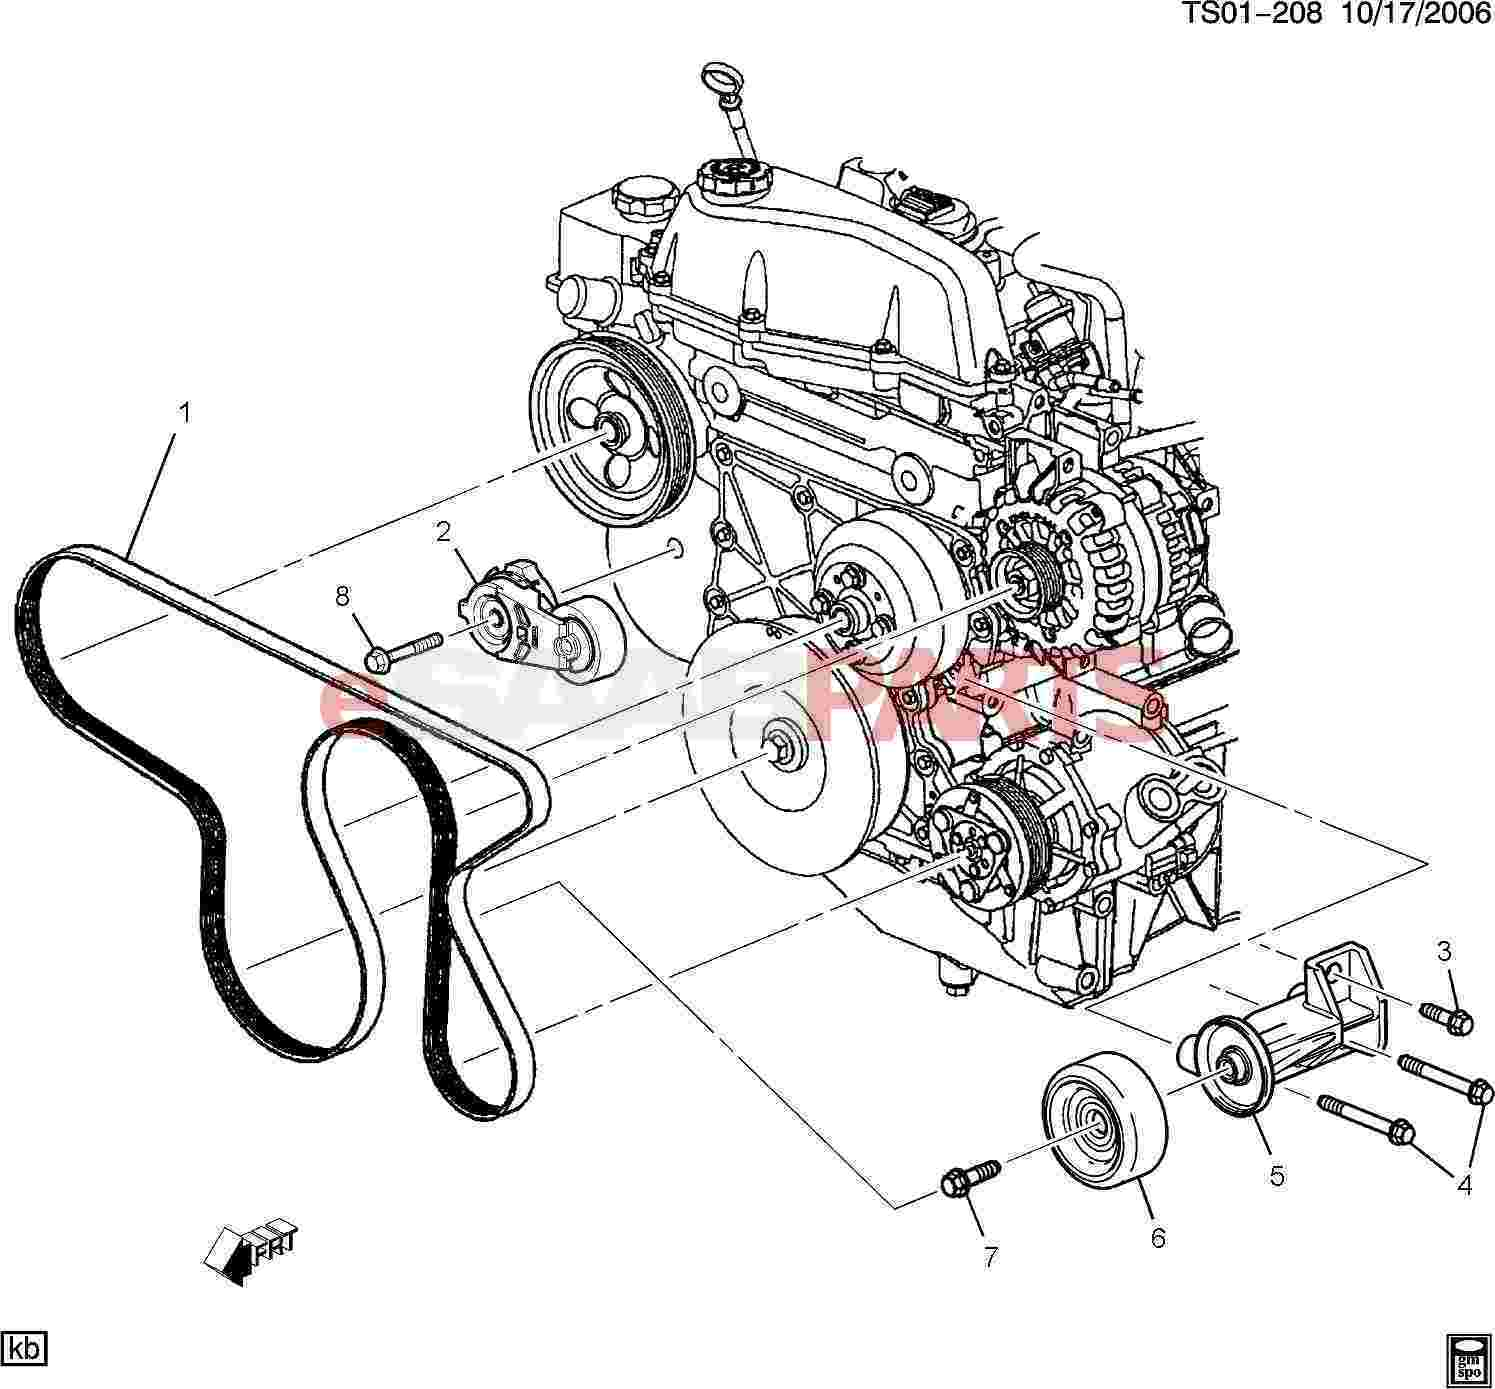 [DIAGRAM] Pontiac Montana Questions Wiring Diagram FULL